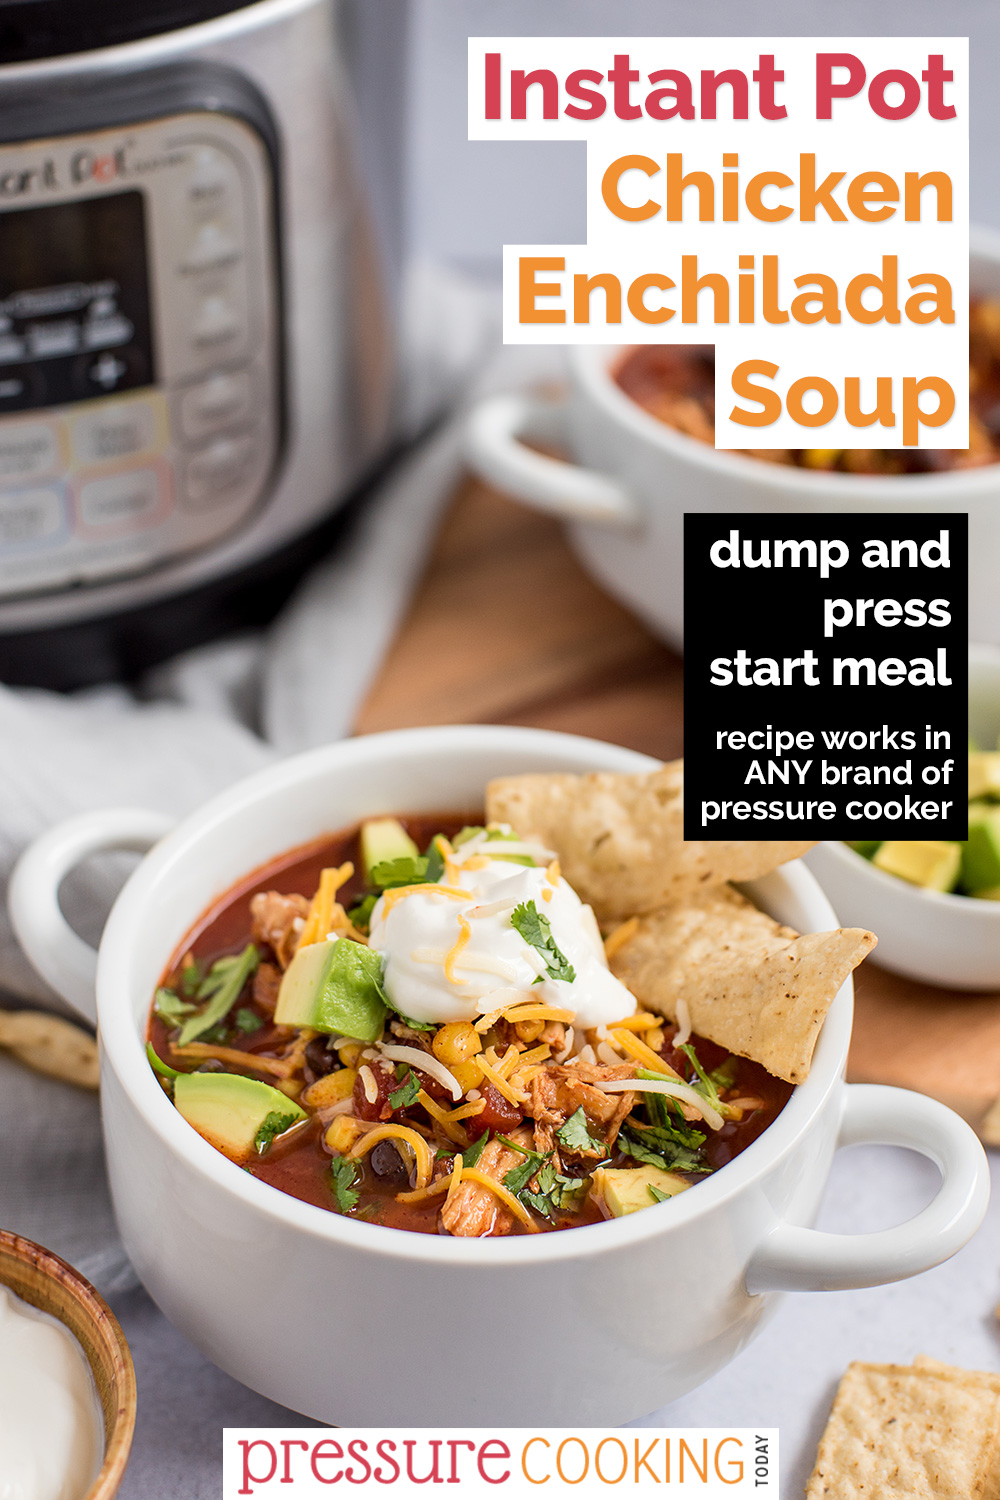 """Pinterest image promoting Instant Pot Chicken Enchilada Soup with a black text box that reads """"dump and press start meal, recipe works in any brand of pressure cooker"""" overlaid on a photo with a white soup bowl loaded with red soup, topped with avocado, shredded cheese, sour cream, cilantro, and garnished with tortilla strips, with an Instant Pot visible in the upper left background via @PressureCook2da"""